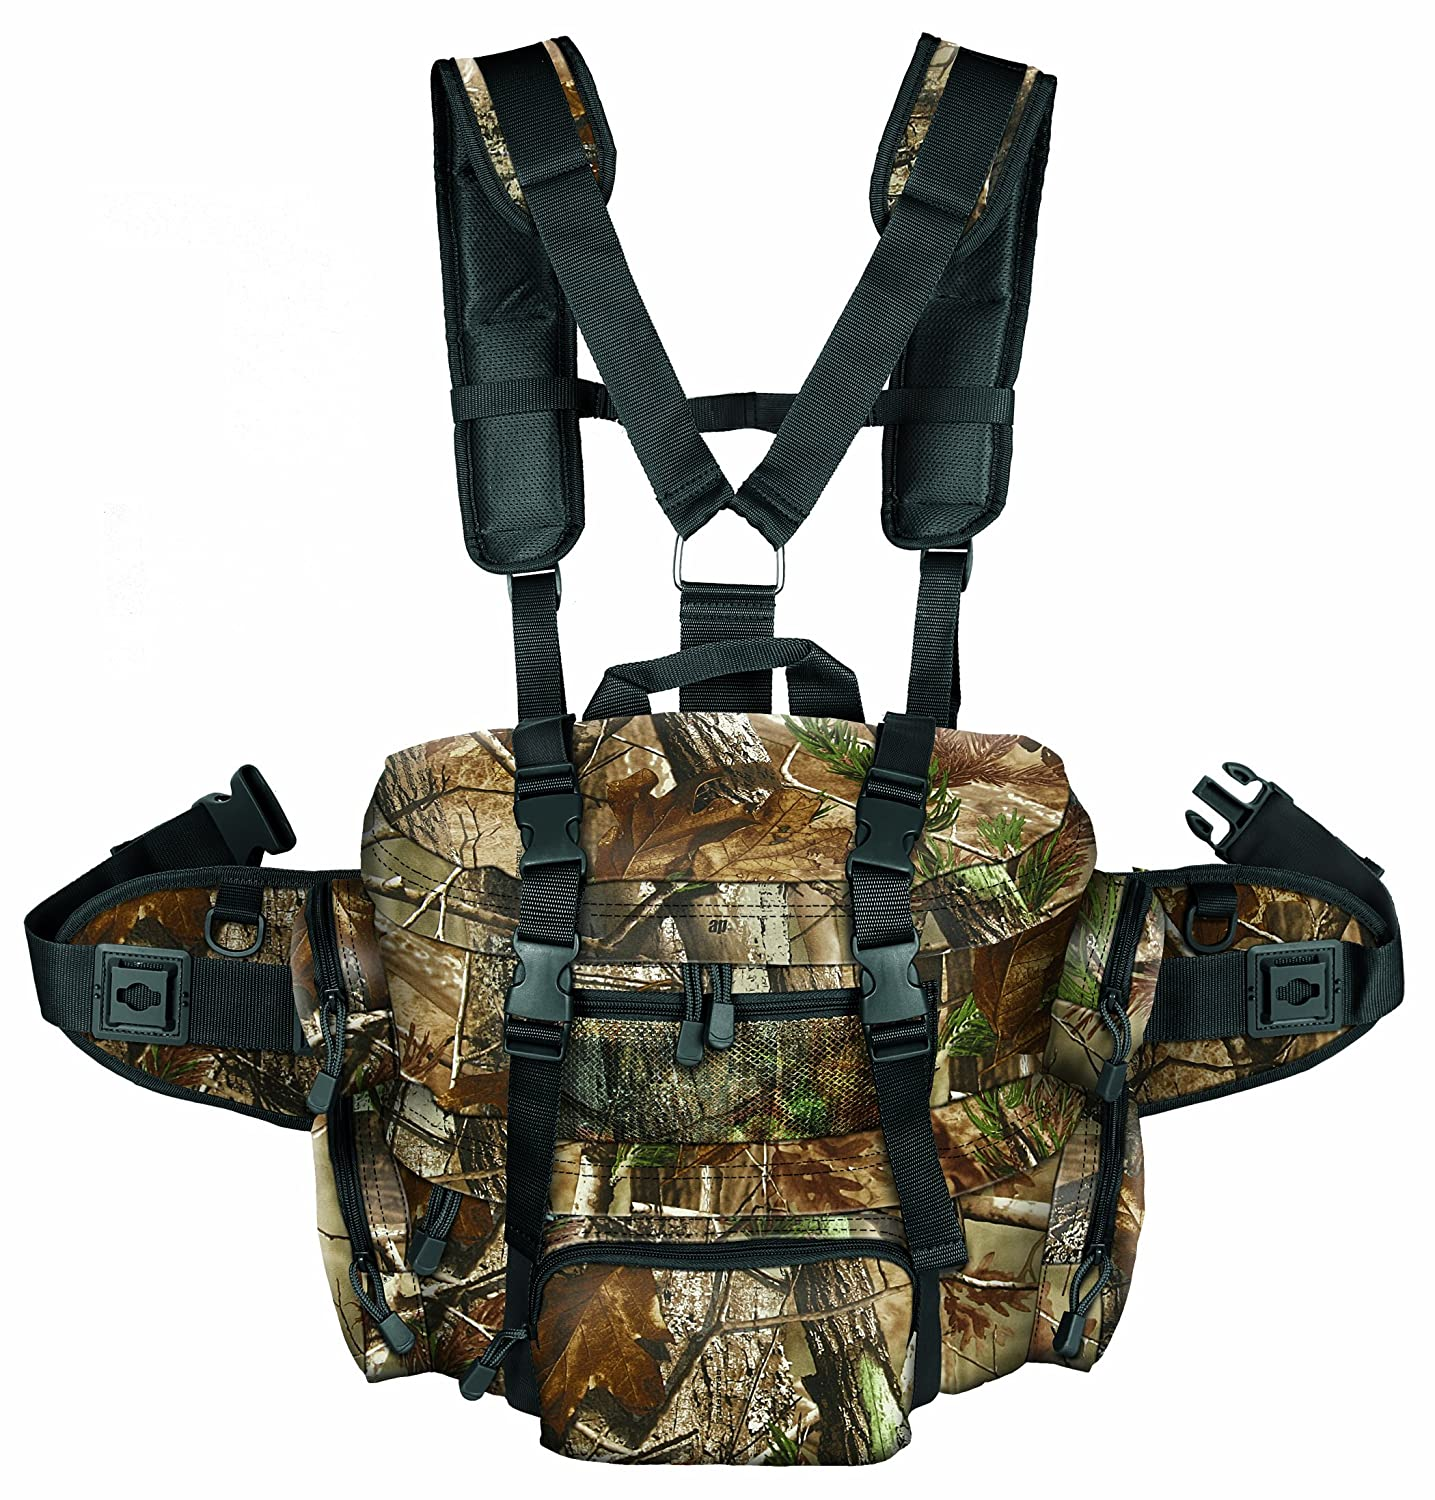 Allen Company Pathfinder Fanny Pack with Shoulder Straps (Realtree Ap)  -